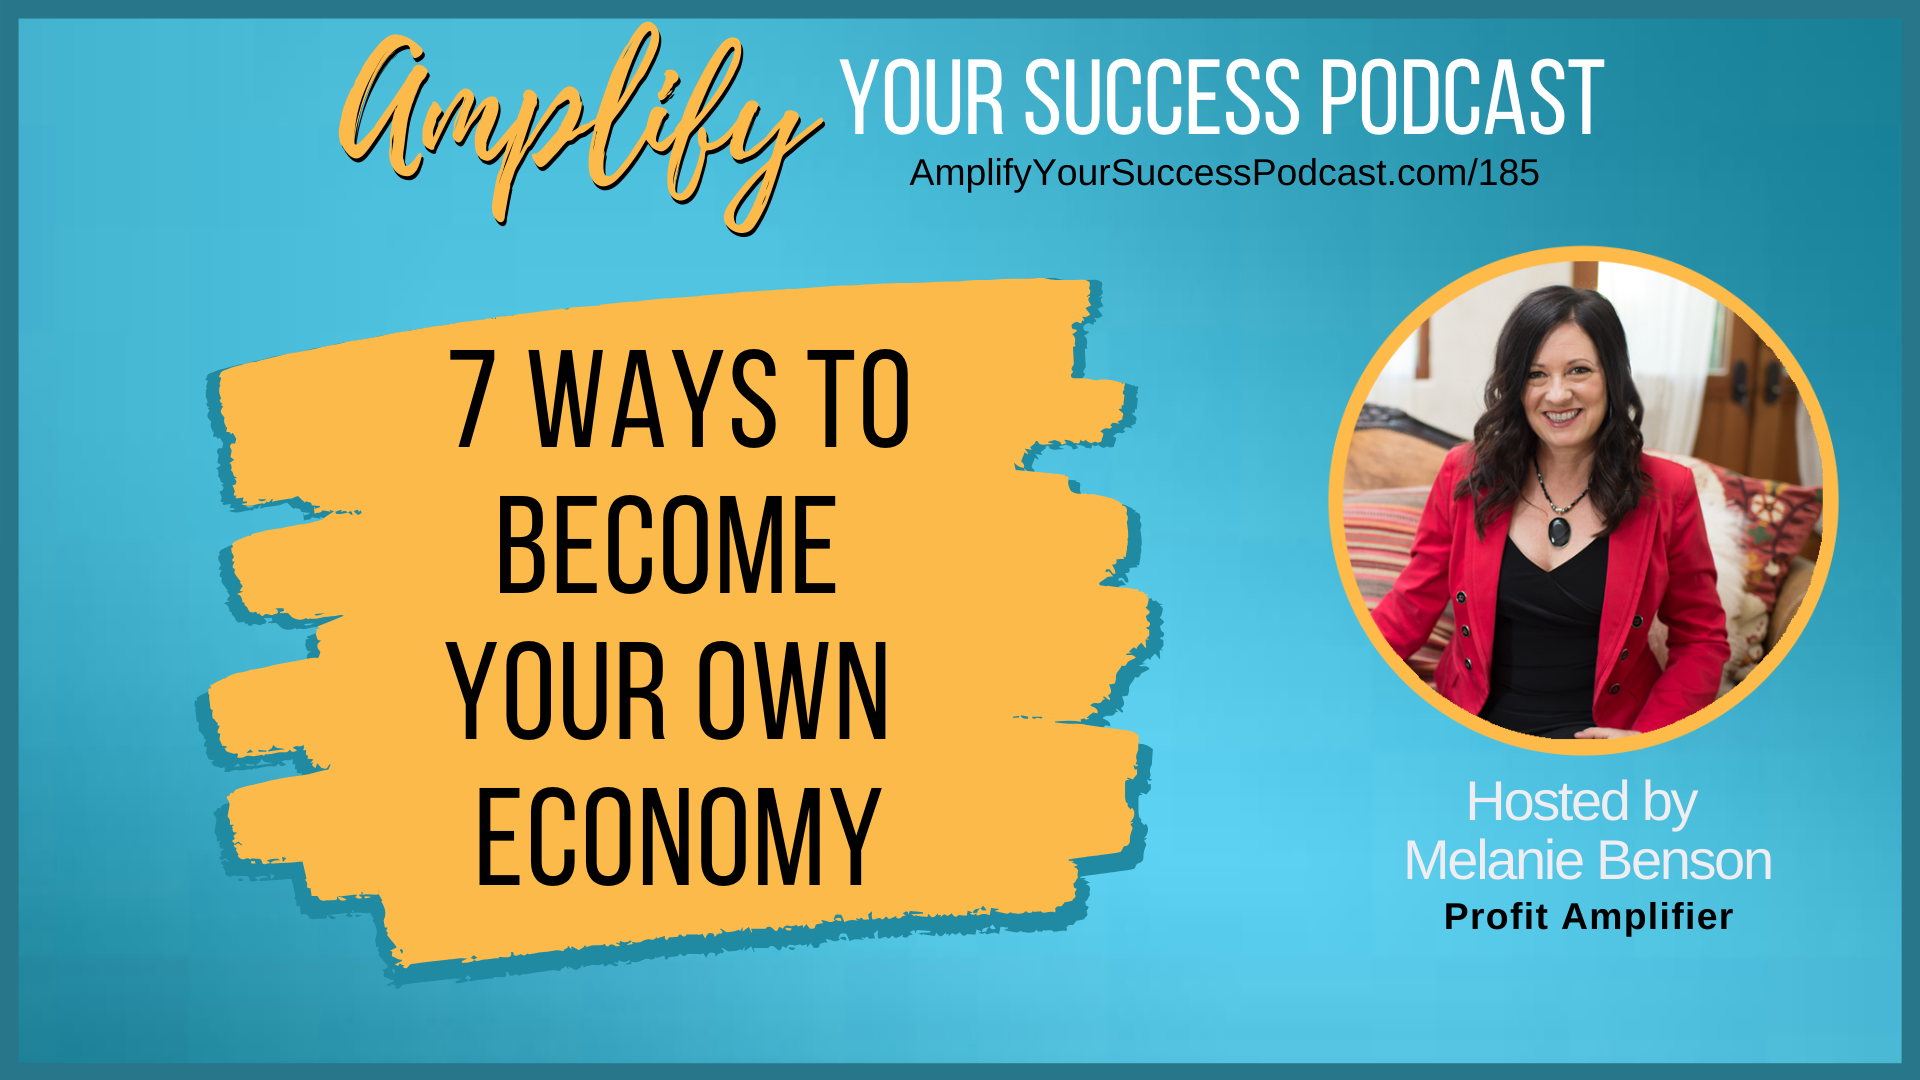 7 Ways to Become Your Own Economy on Amplify Your Success Podcast Episode 185 with Melanie Benson